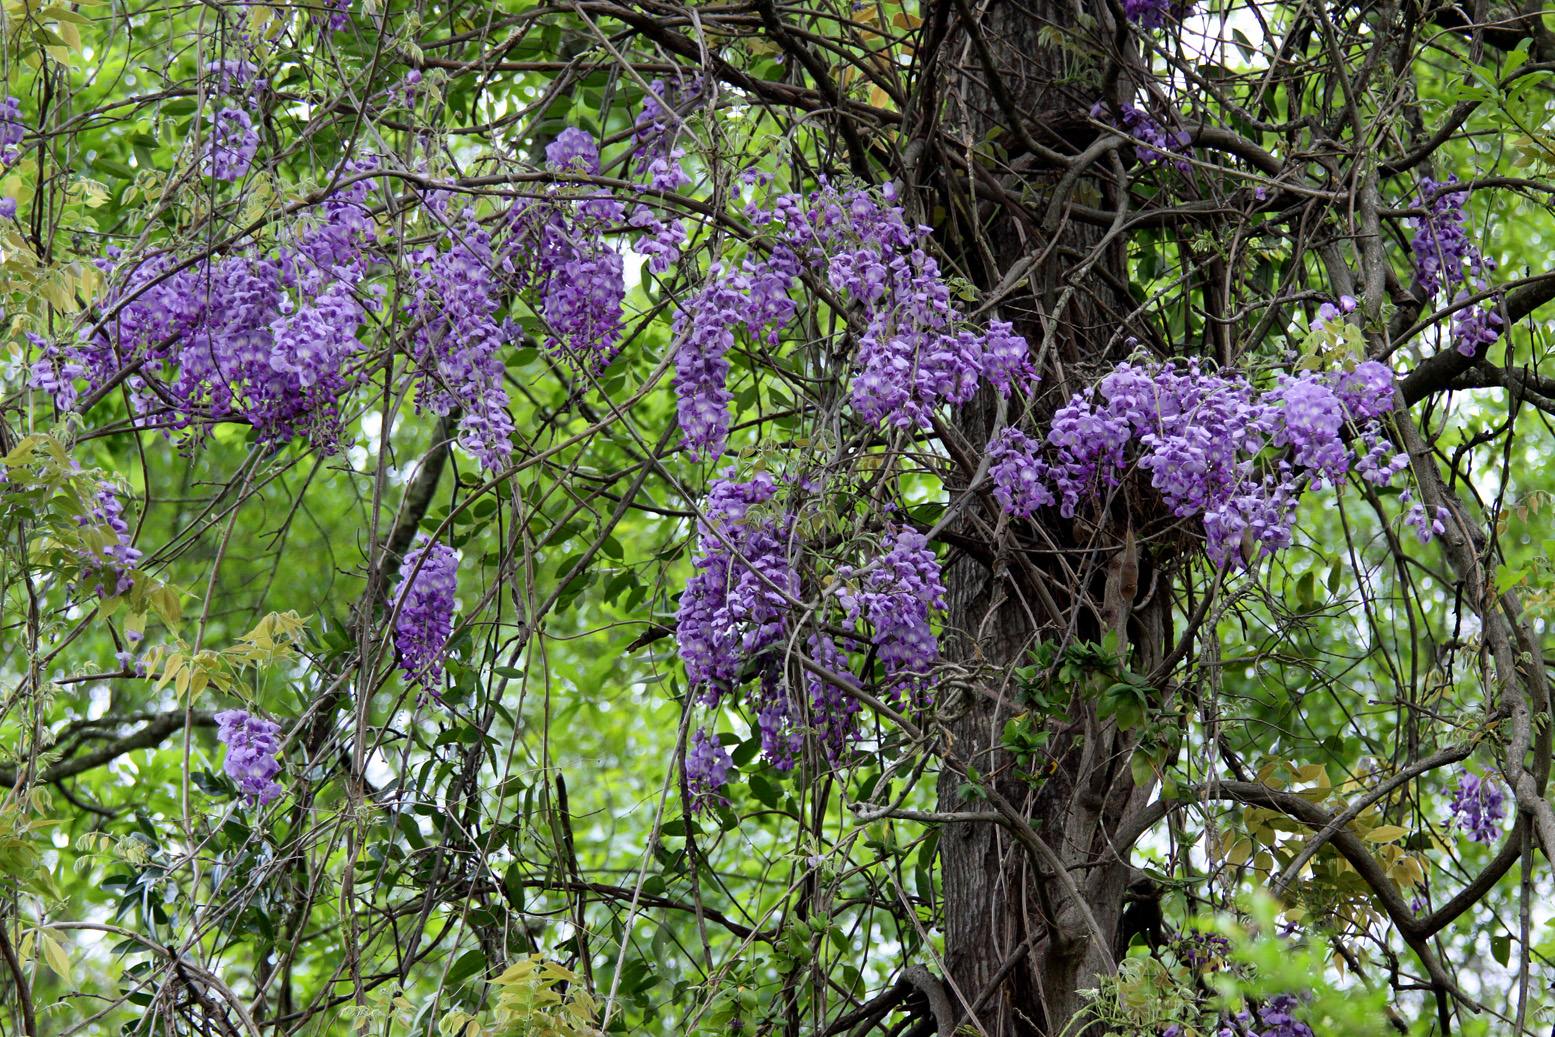 Southern lagniappe wisteria along the natchez trace for The wisteria